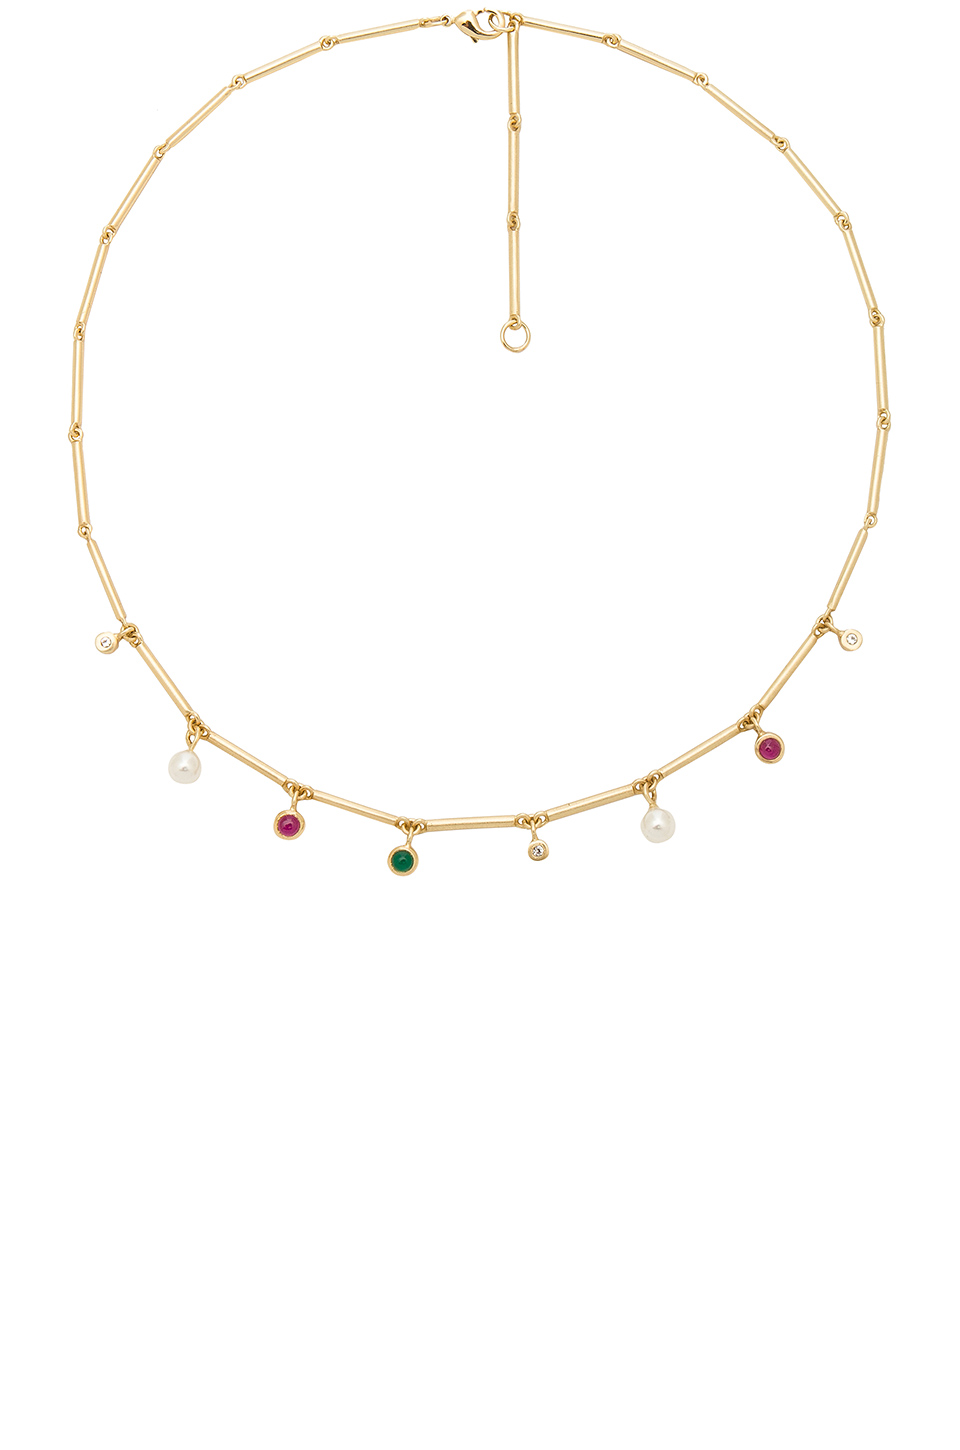 Elizabeth and James Zoe Necklace in Yellow Gold